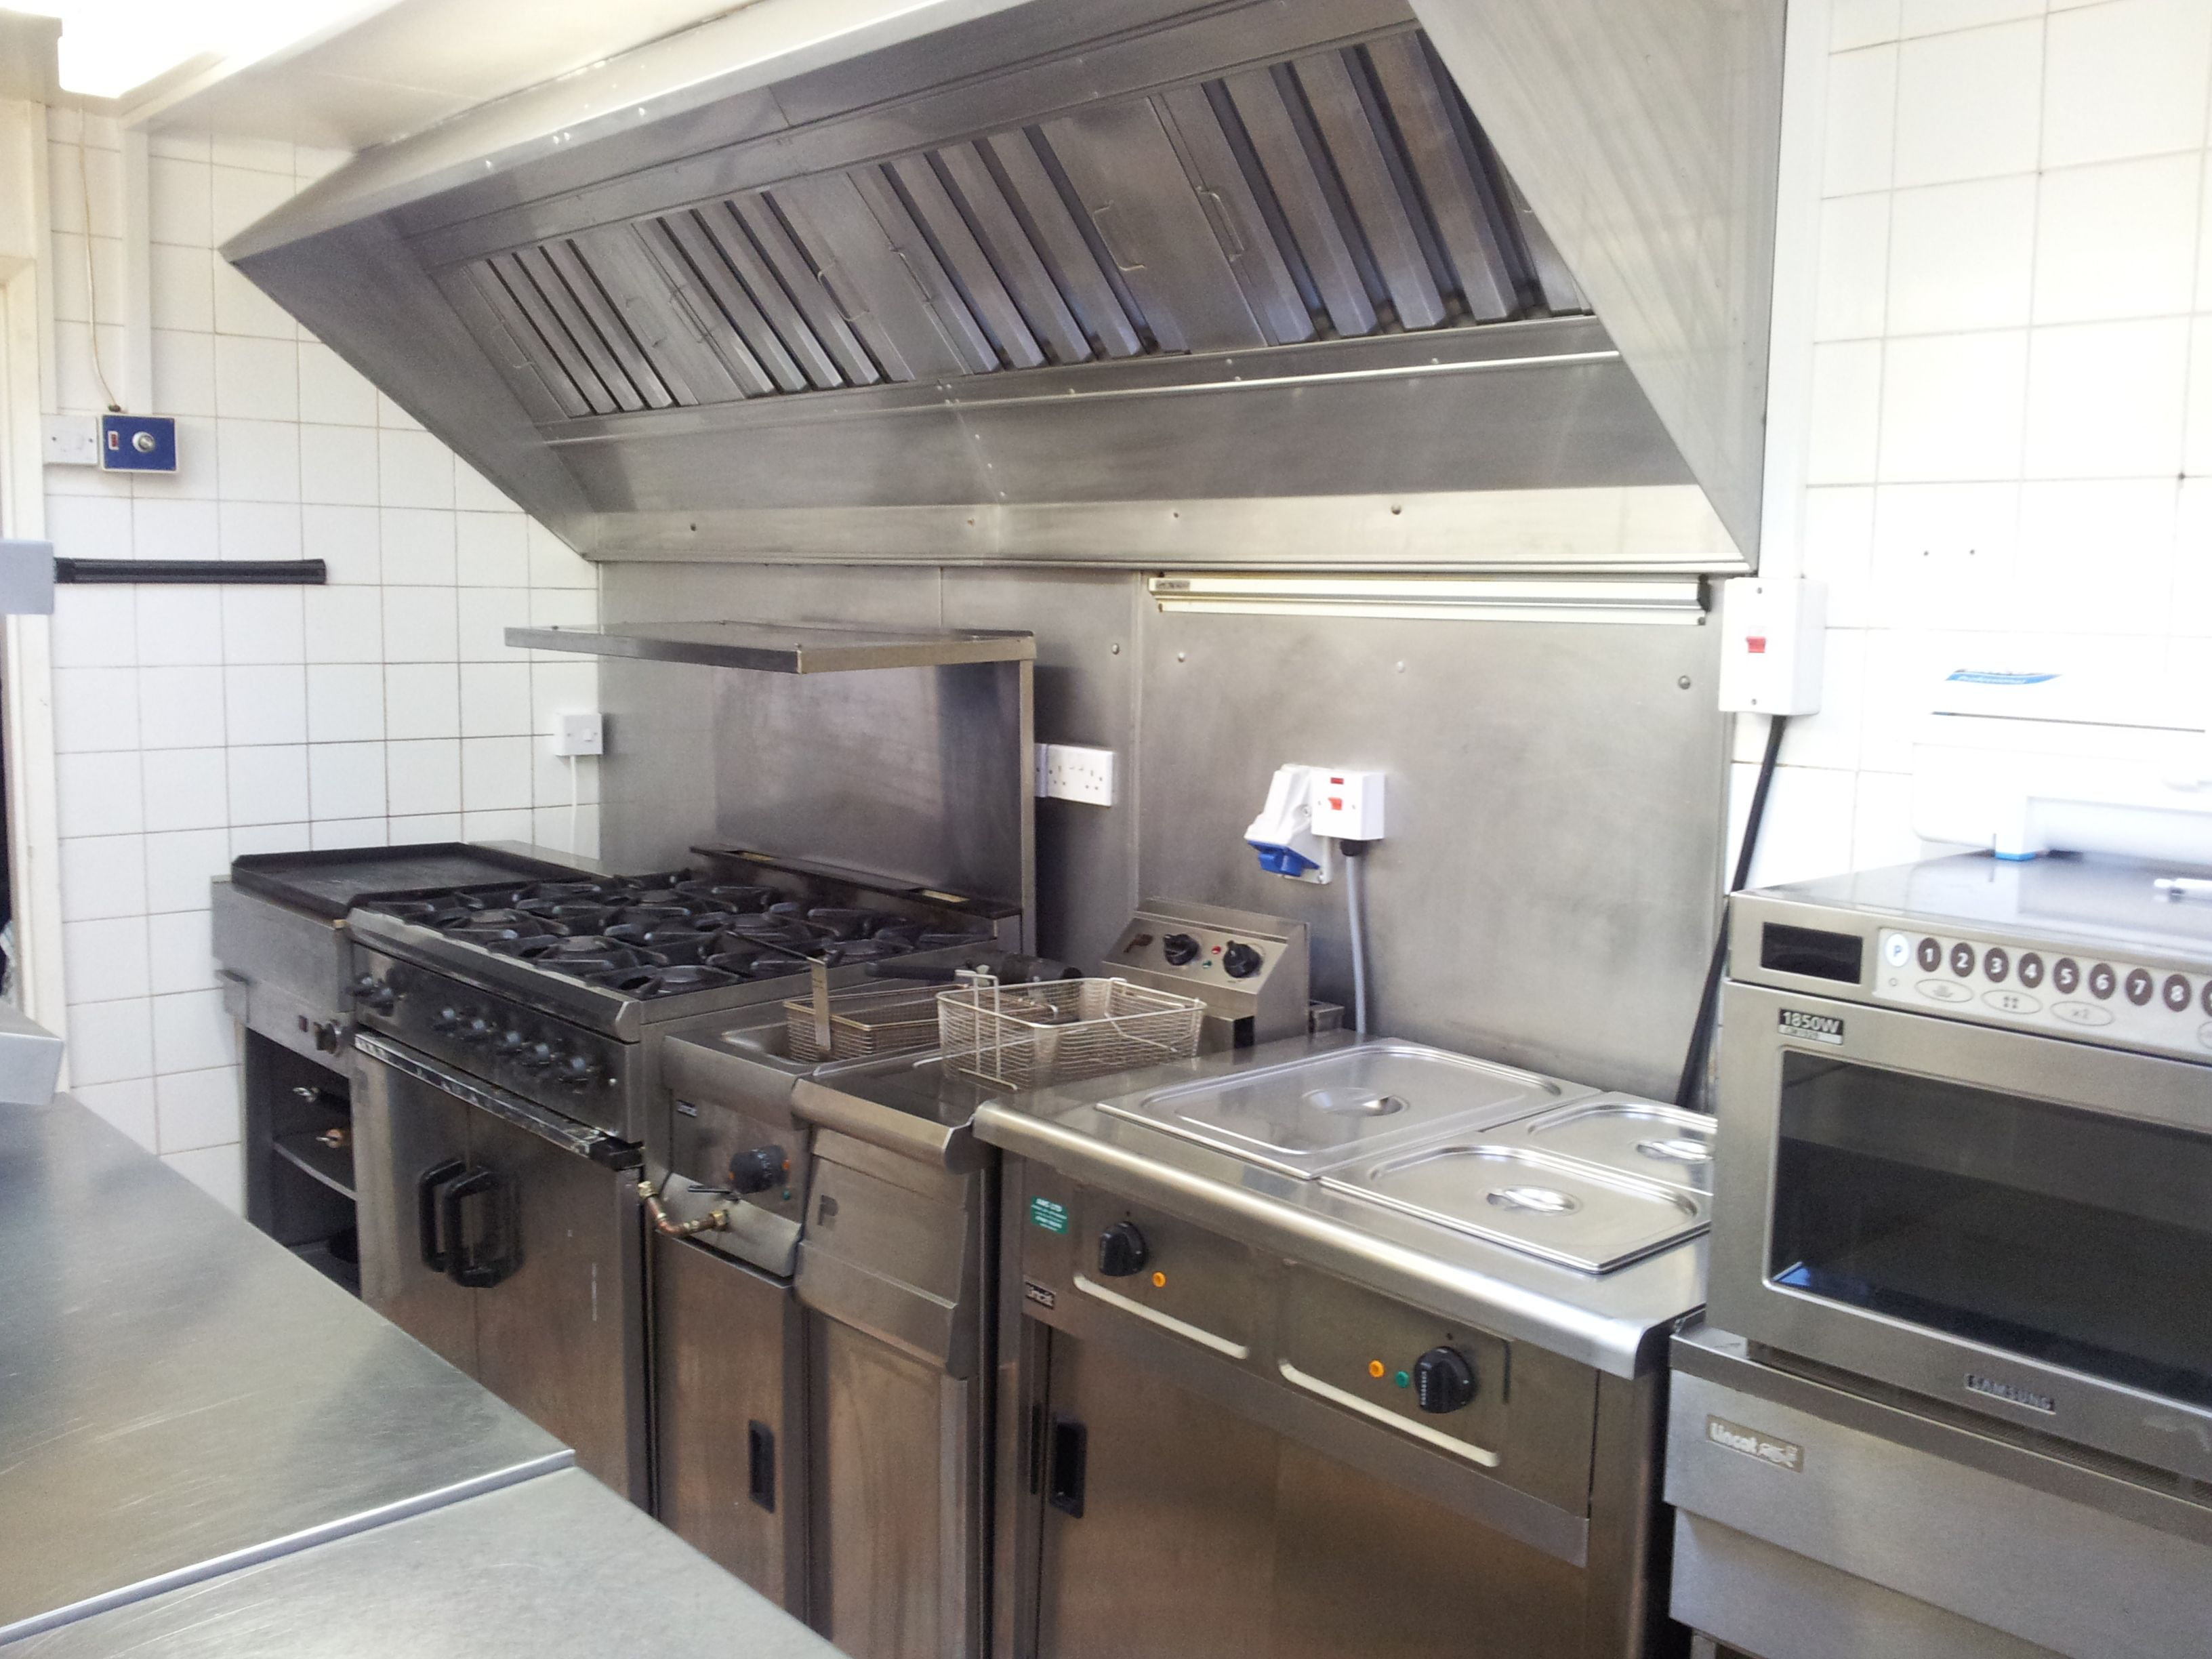 Restaurant Kitchen Ideas small commercial kitchen layout | manna for life ministries soup